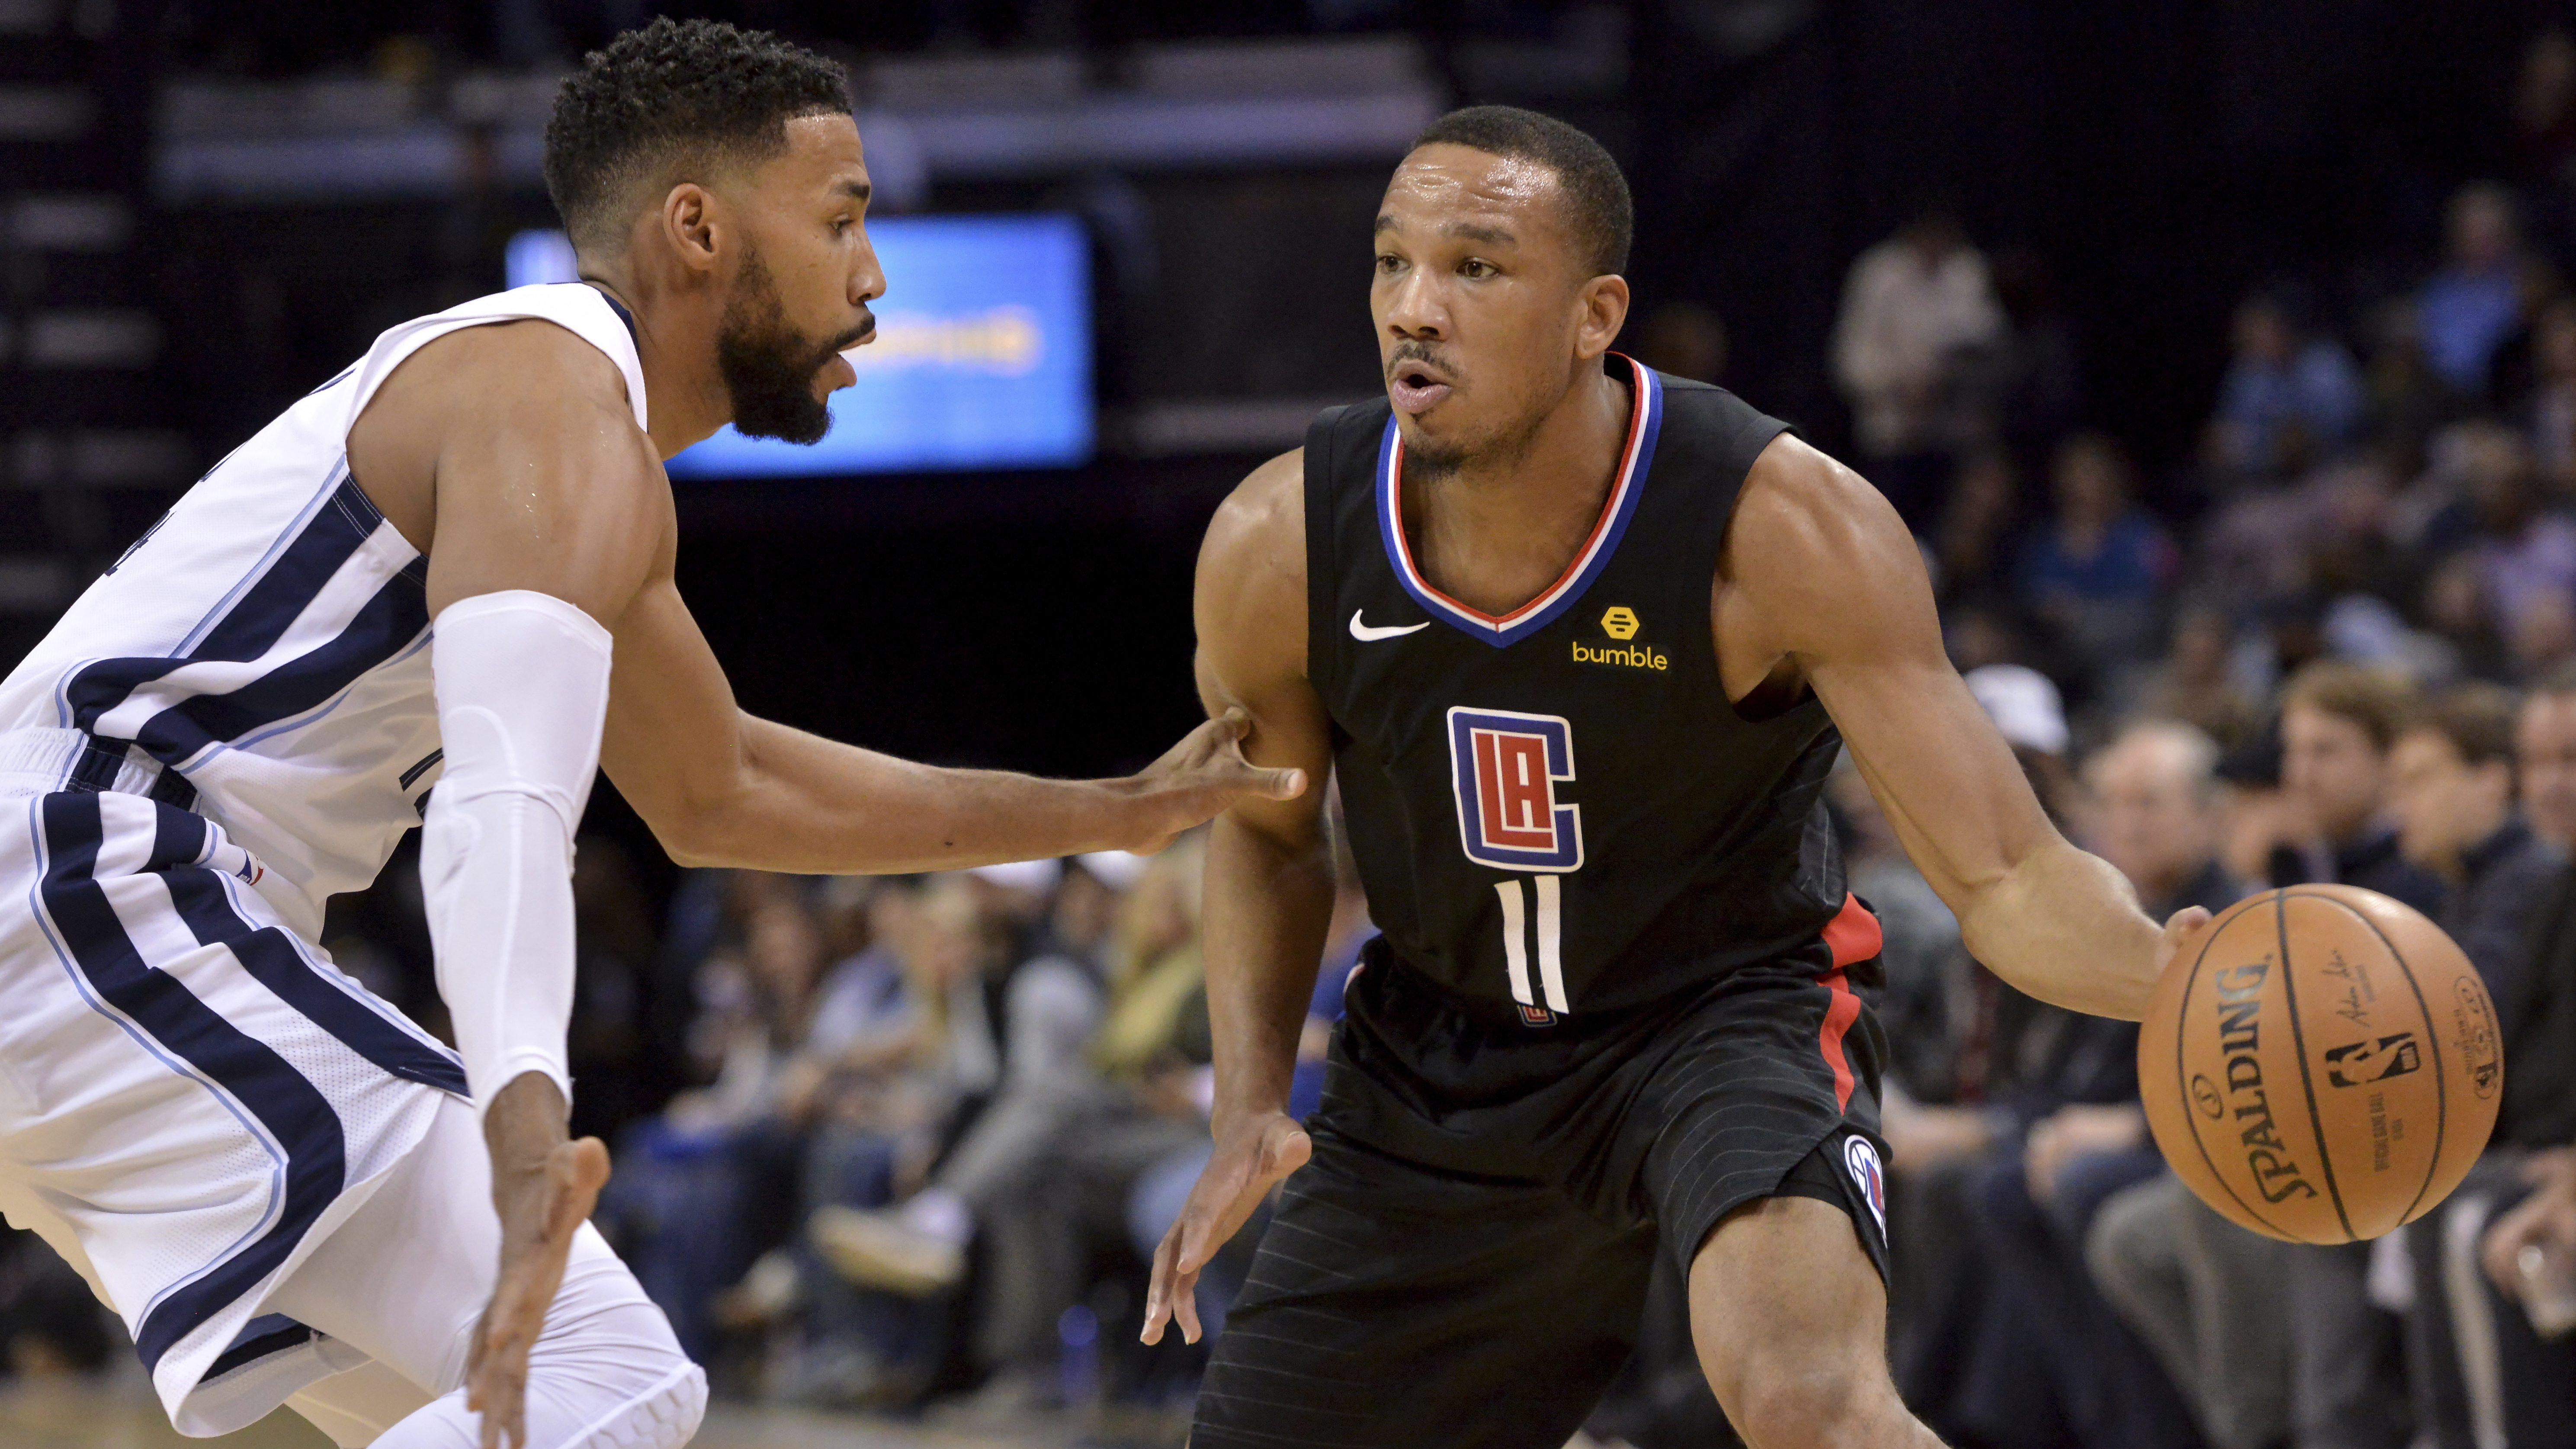 Report: Clippers trade Avery Bradley to Grizzlies for JaMychal Green and Garrett Temple